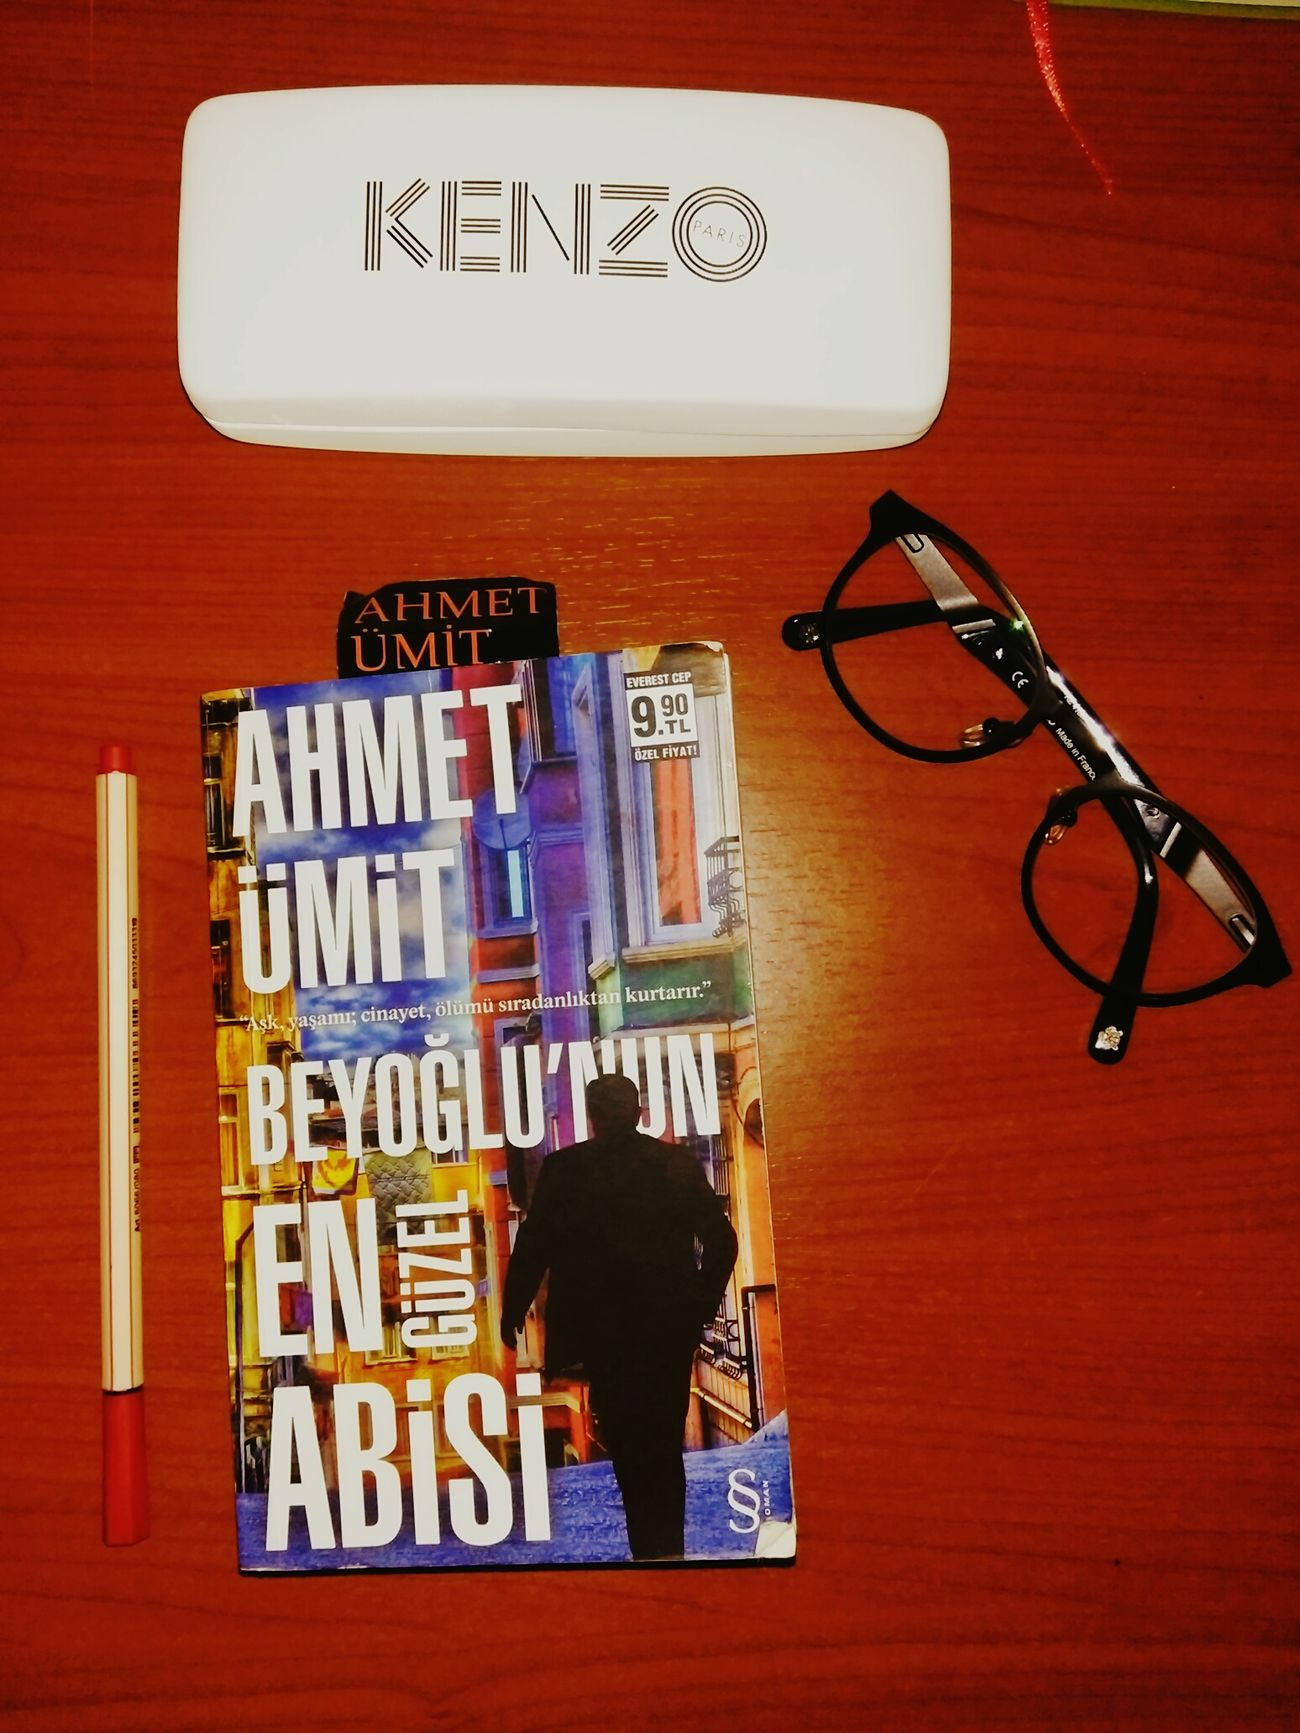 Kenzo KenzoGlasses Glasses Book Red Ahmetümit BeyoğlununEnGüzelAbisi Everest Yayınları Booktime Paris Acessories